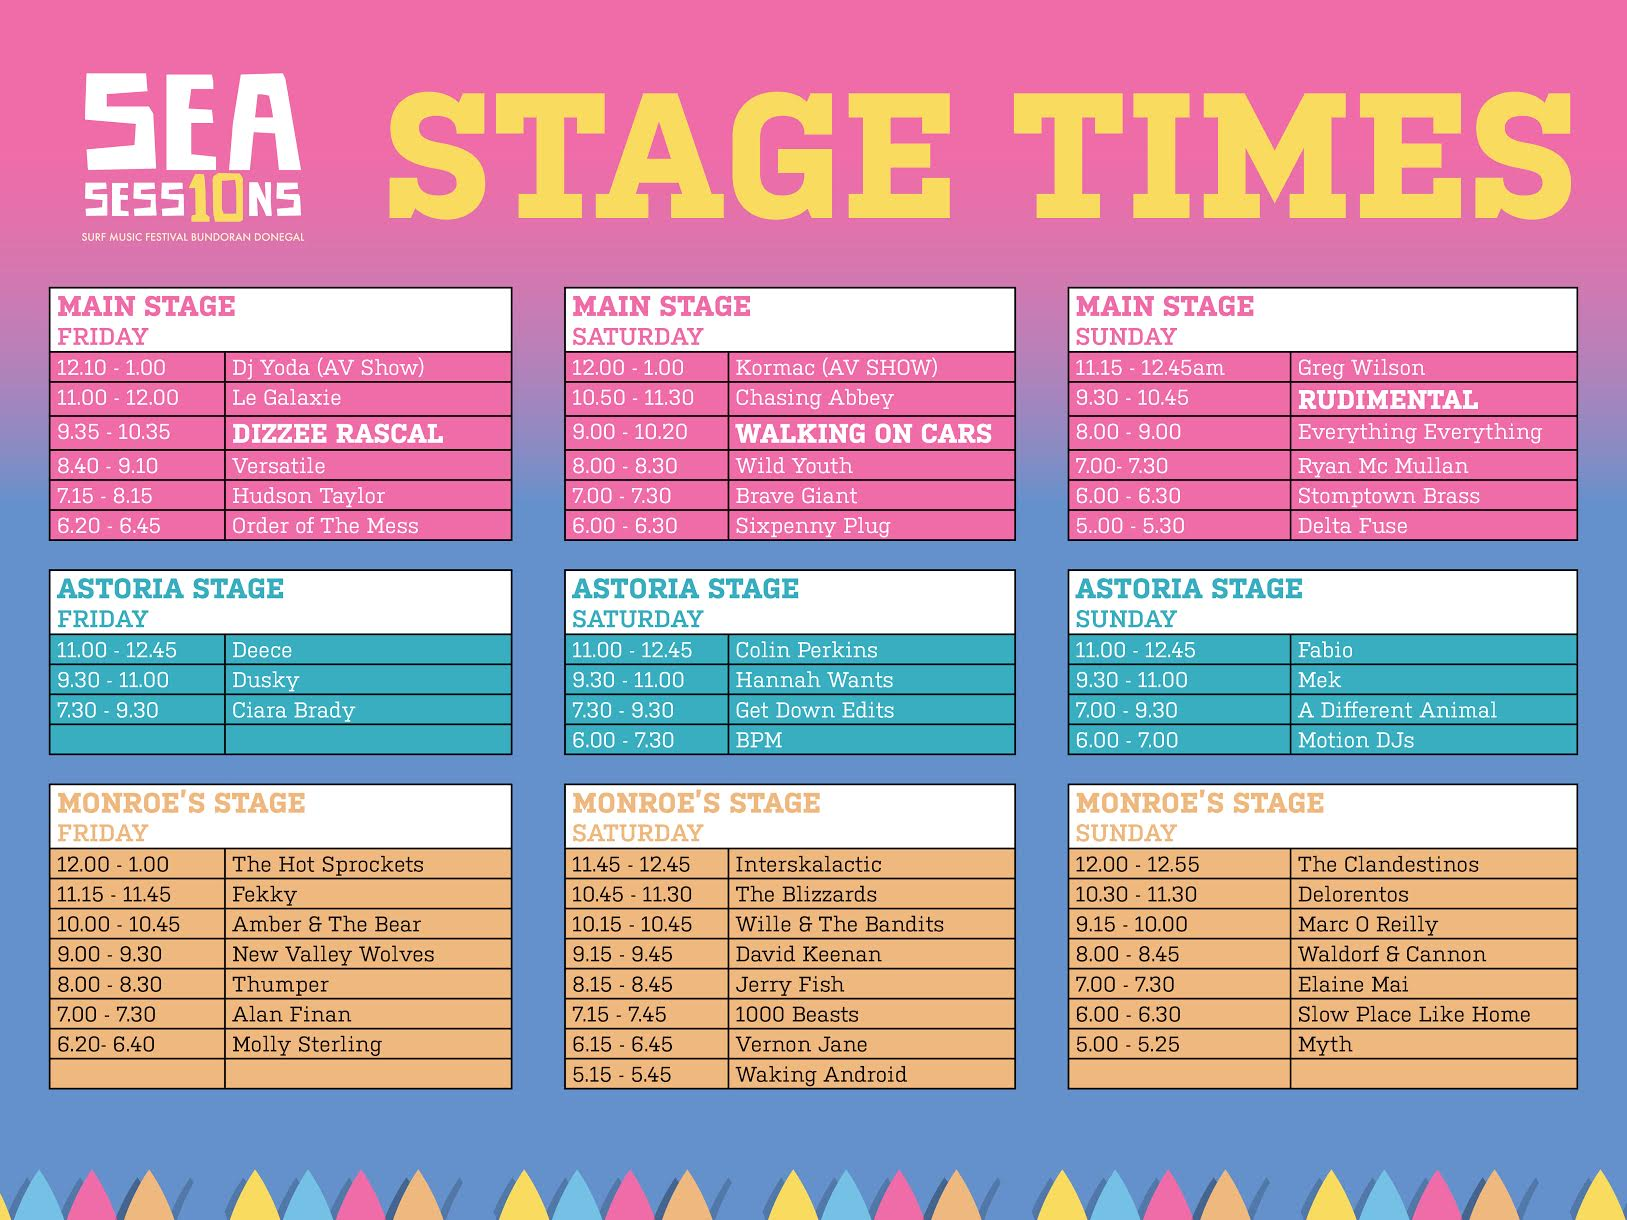 Sea Sessions 2018 stage times announced